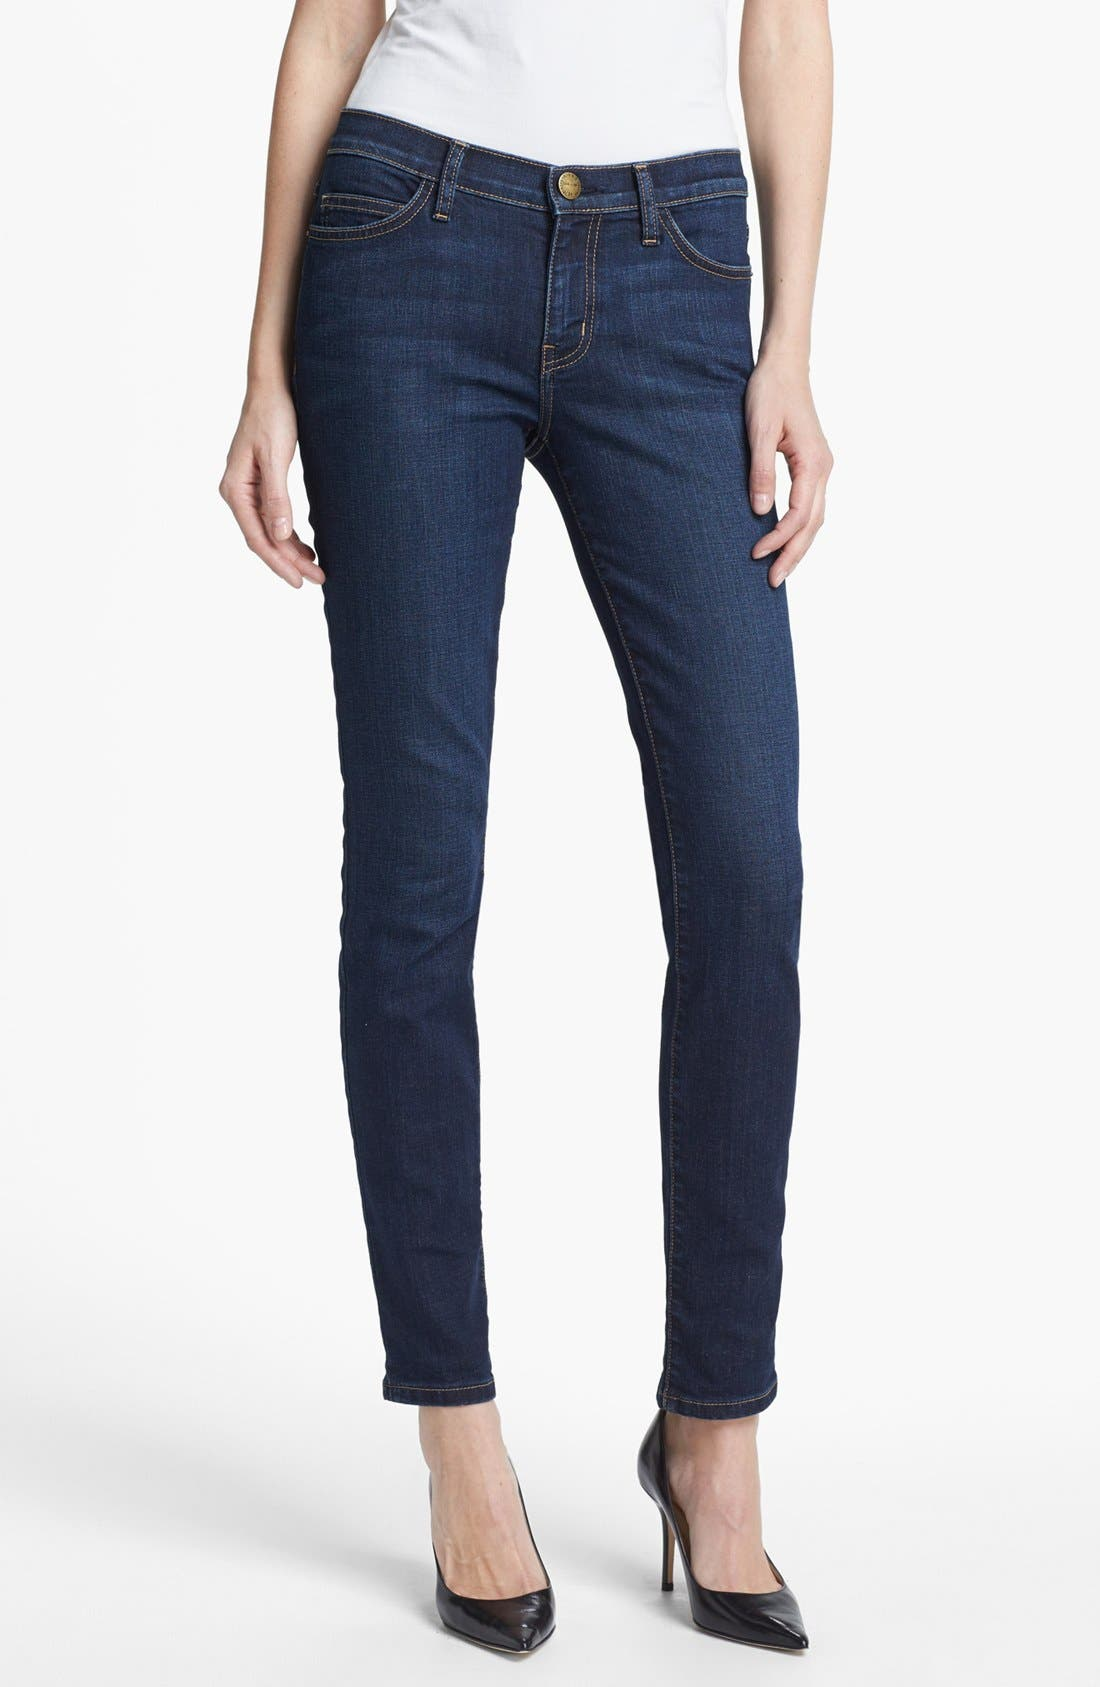 Alternate Image 1 Selected - Current/Elliott 'The Ankle' Skinny Jeans (Nordstrom Exclusive)